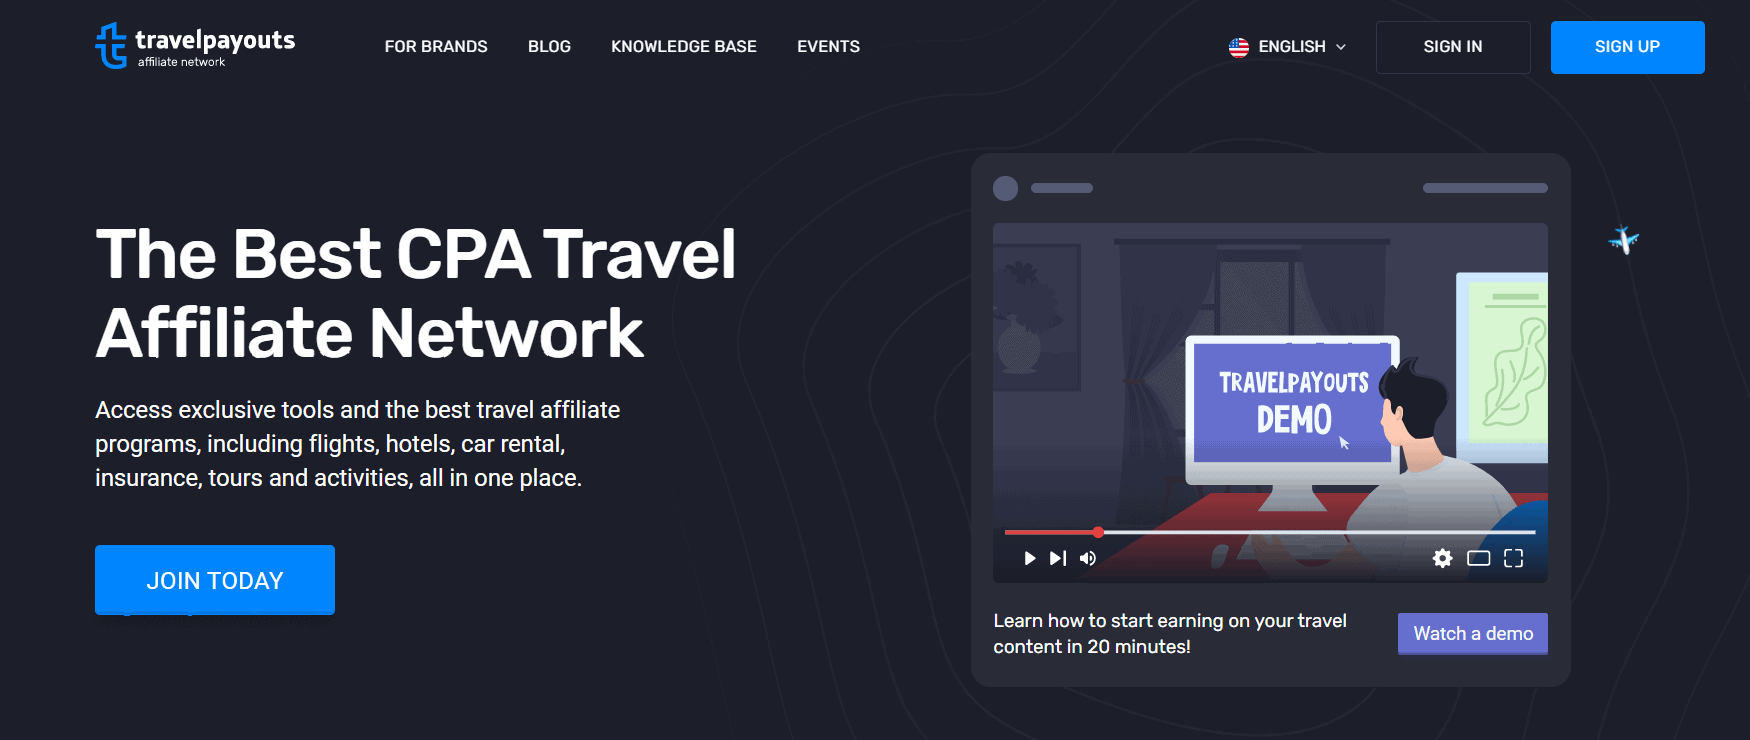 Travelpayouts Overview